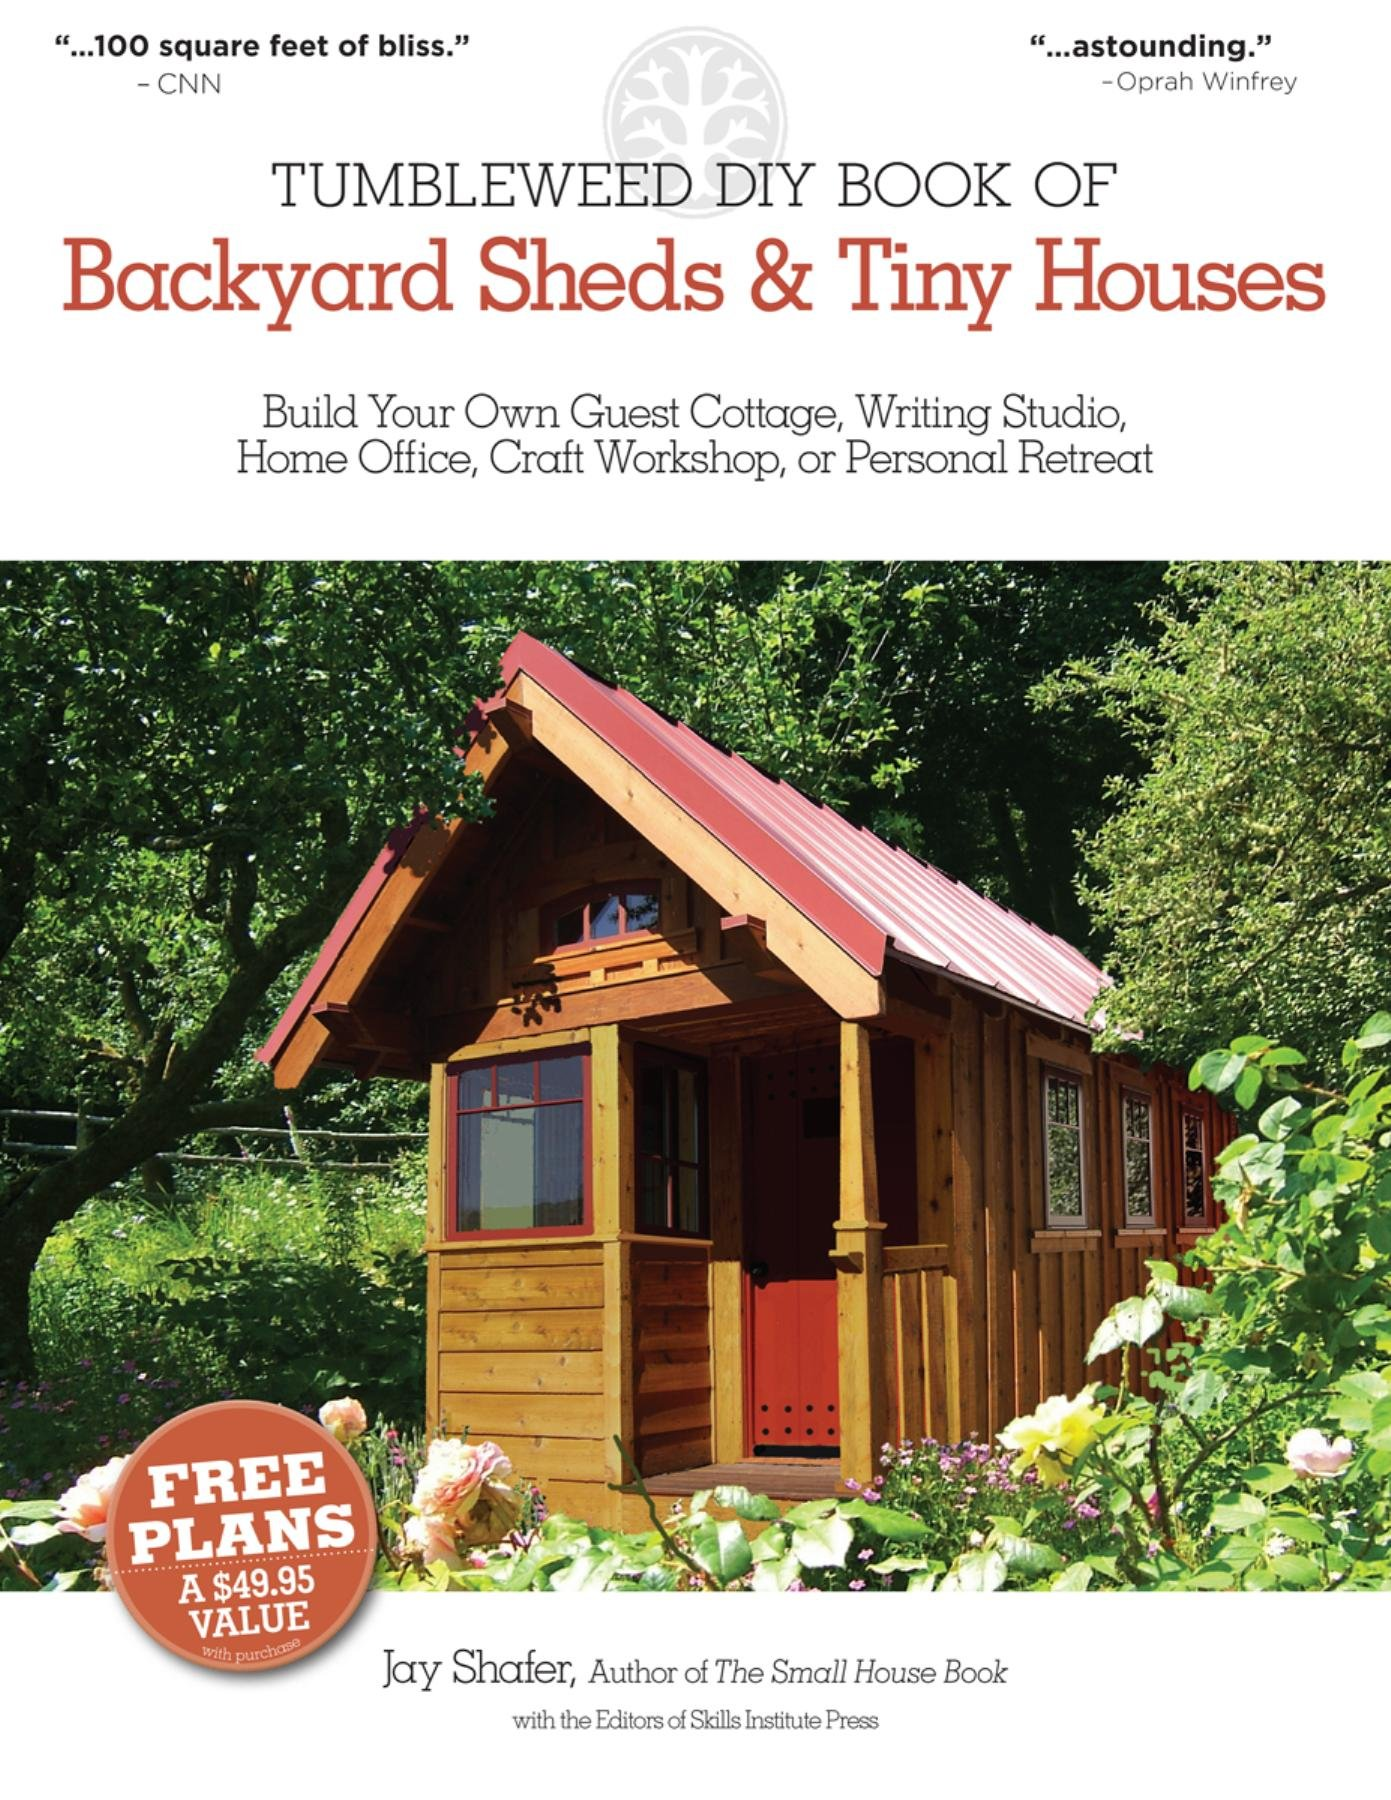 tiny backyard home office. the tumbleweed diy book of backyard sheds and tiny houses build your own guest cottage writing studio home office craft workshop or personal retreat